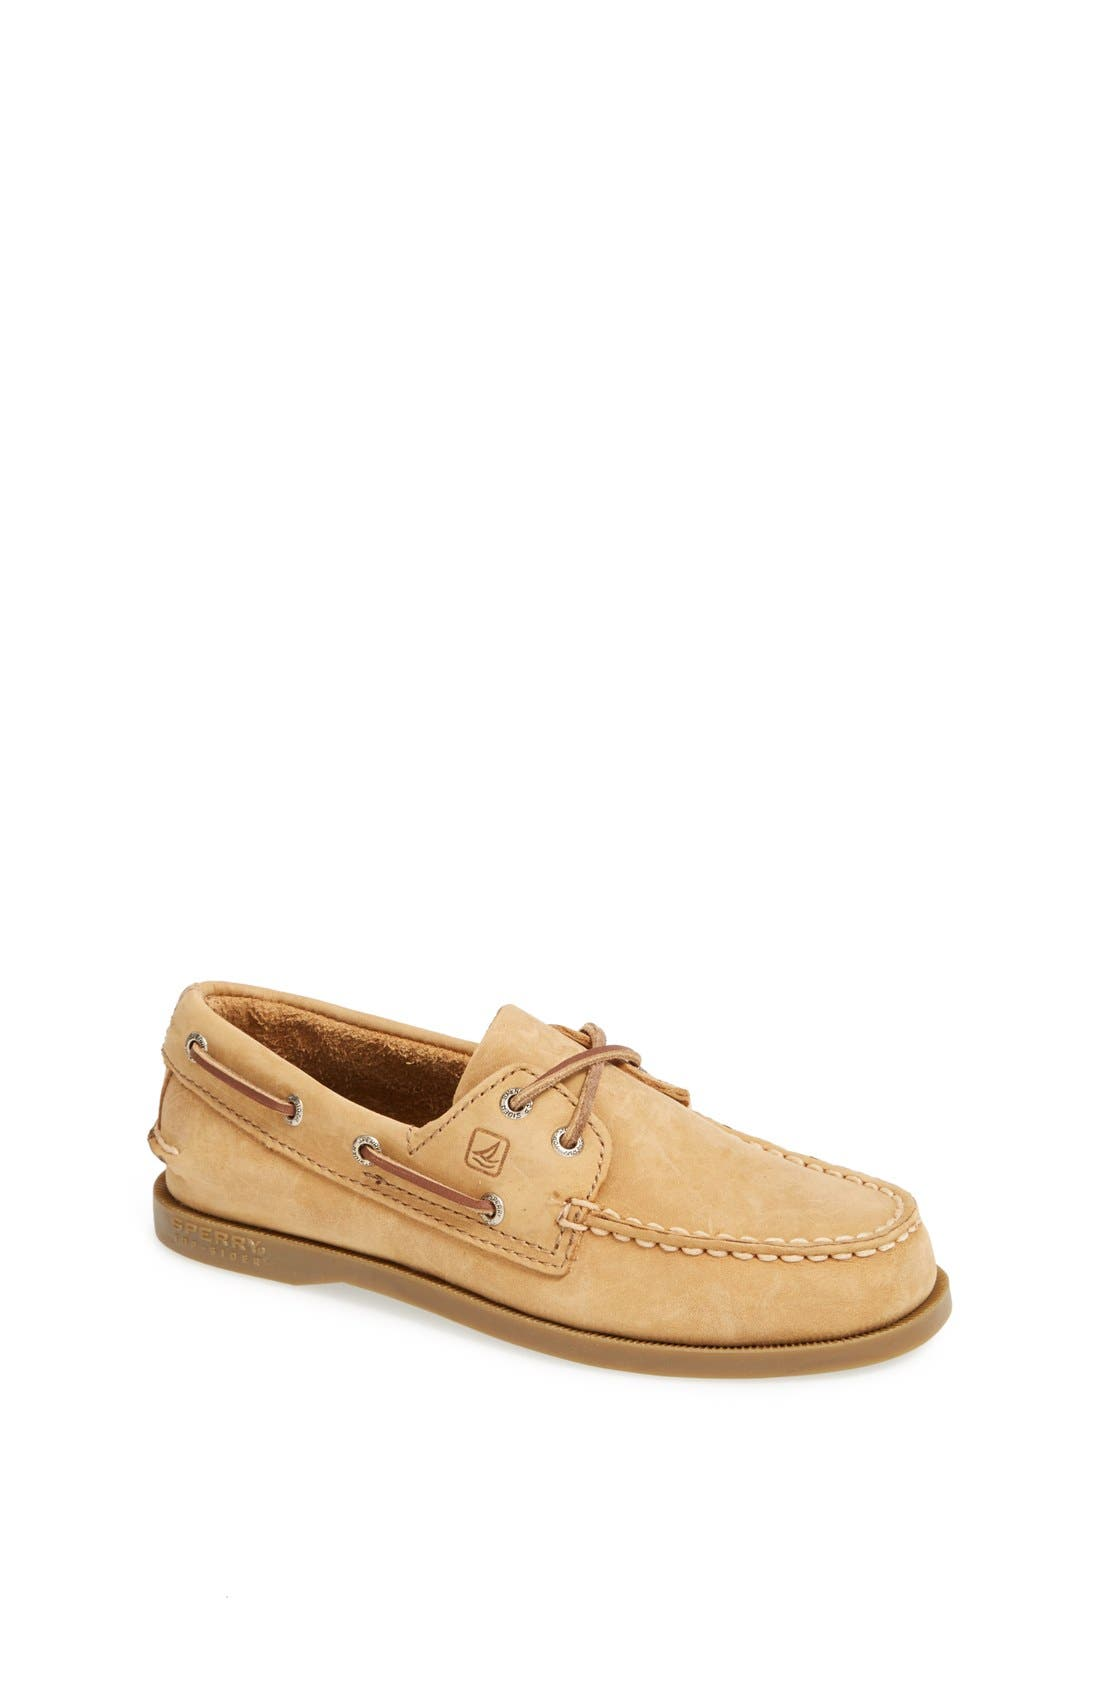 SPERRY Kids Authentic Original Boat Shoe